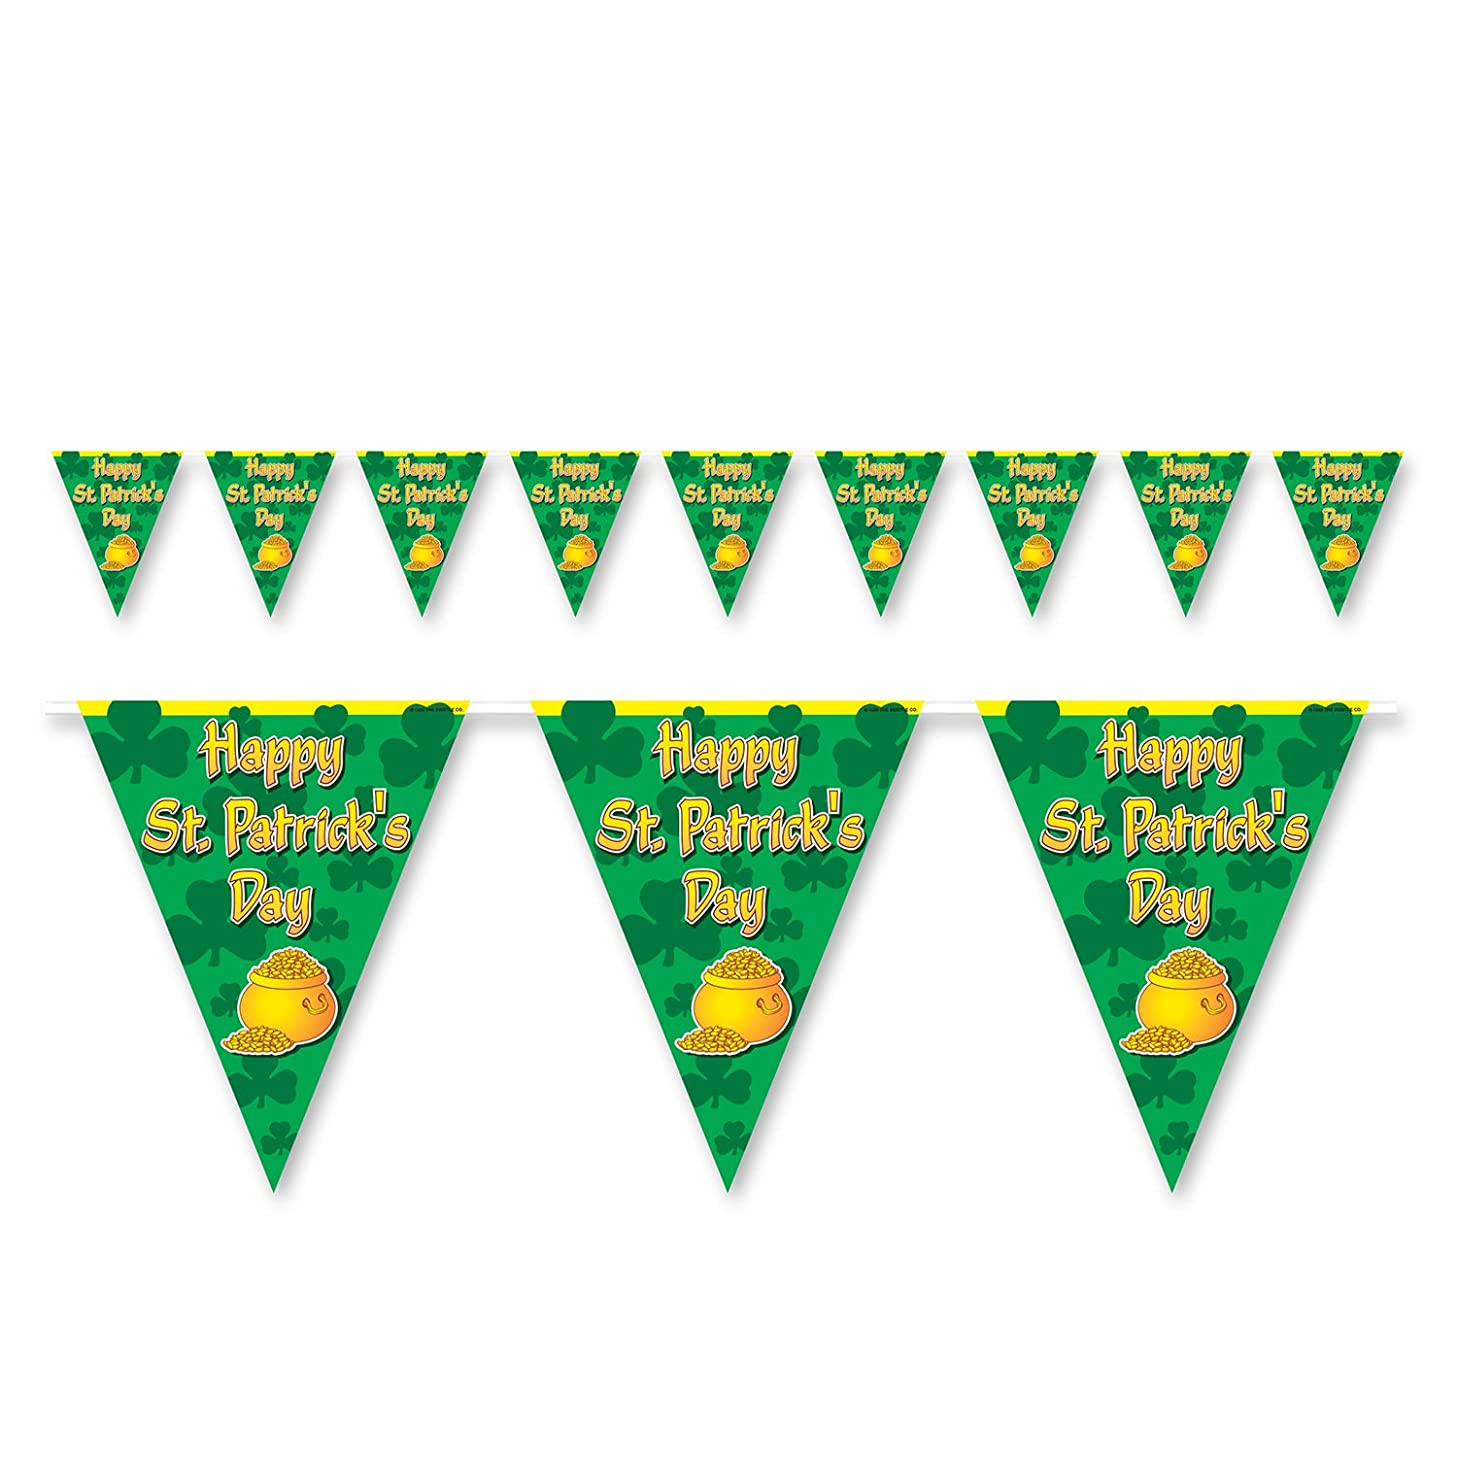 Happy St Patricks Day Pennant Banner Party Accessory (3-Pack)